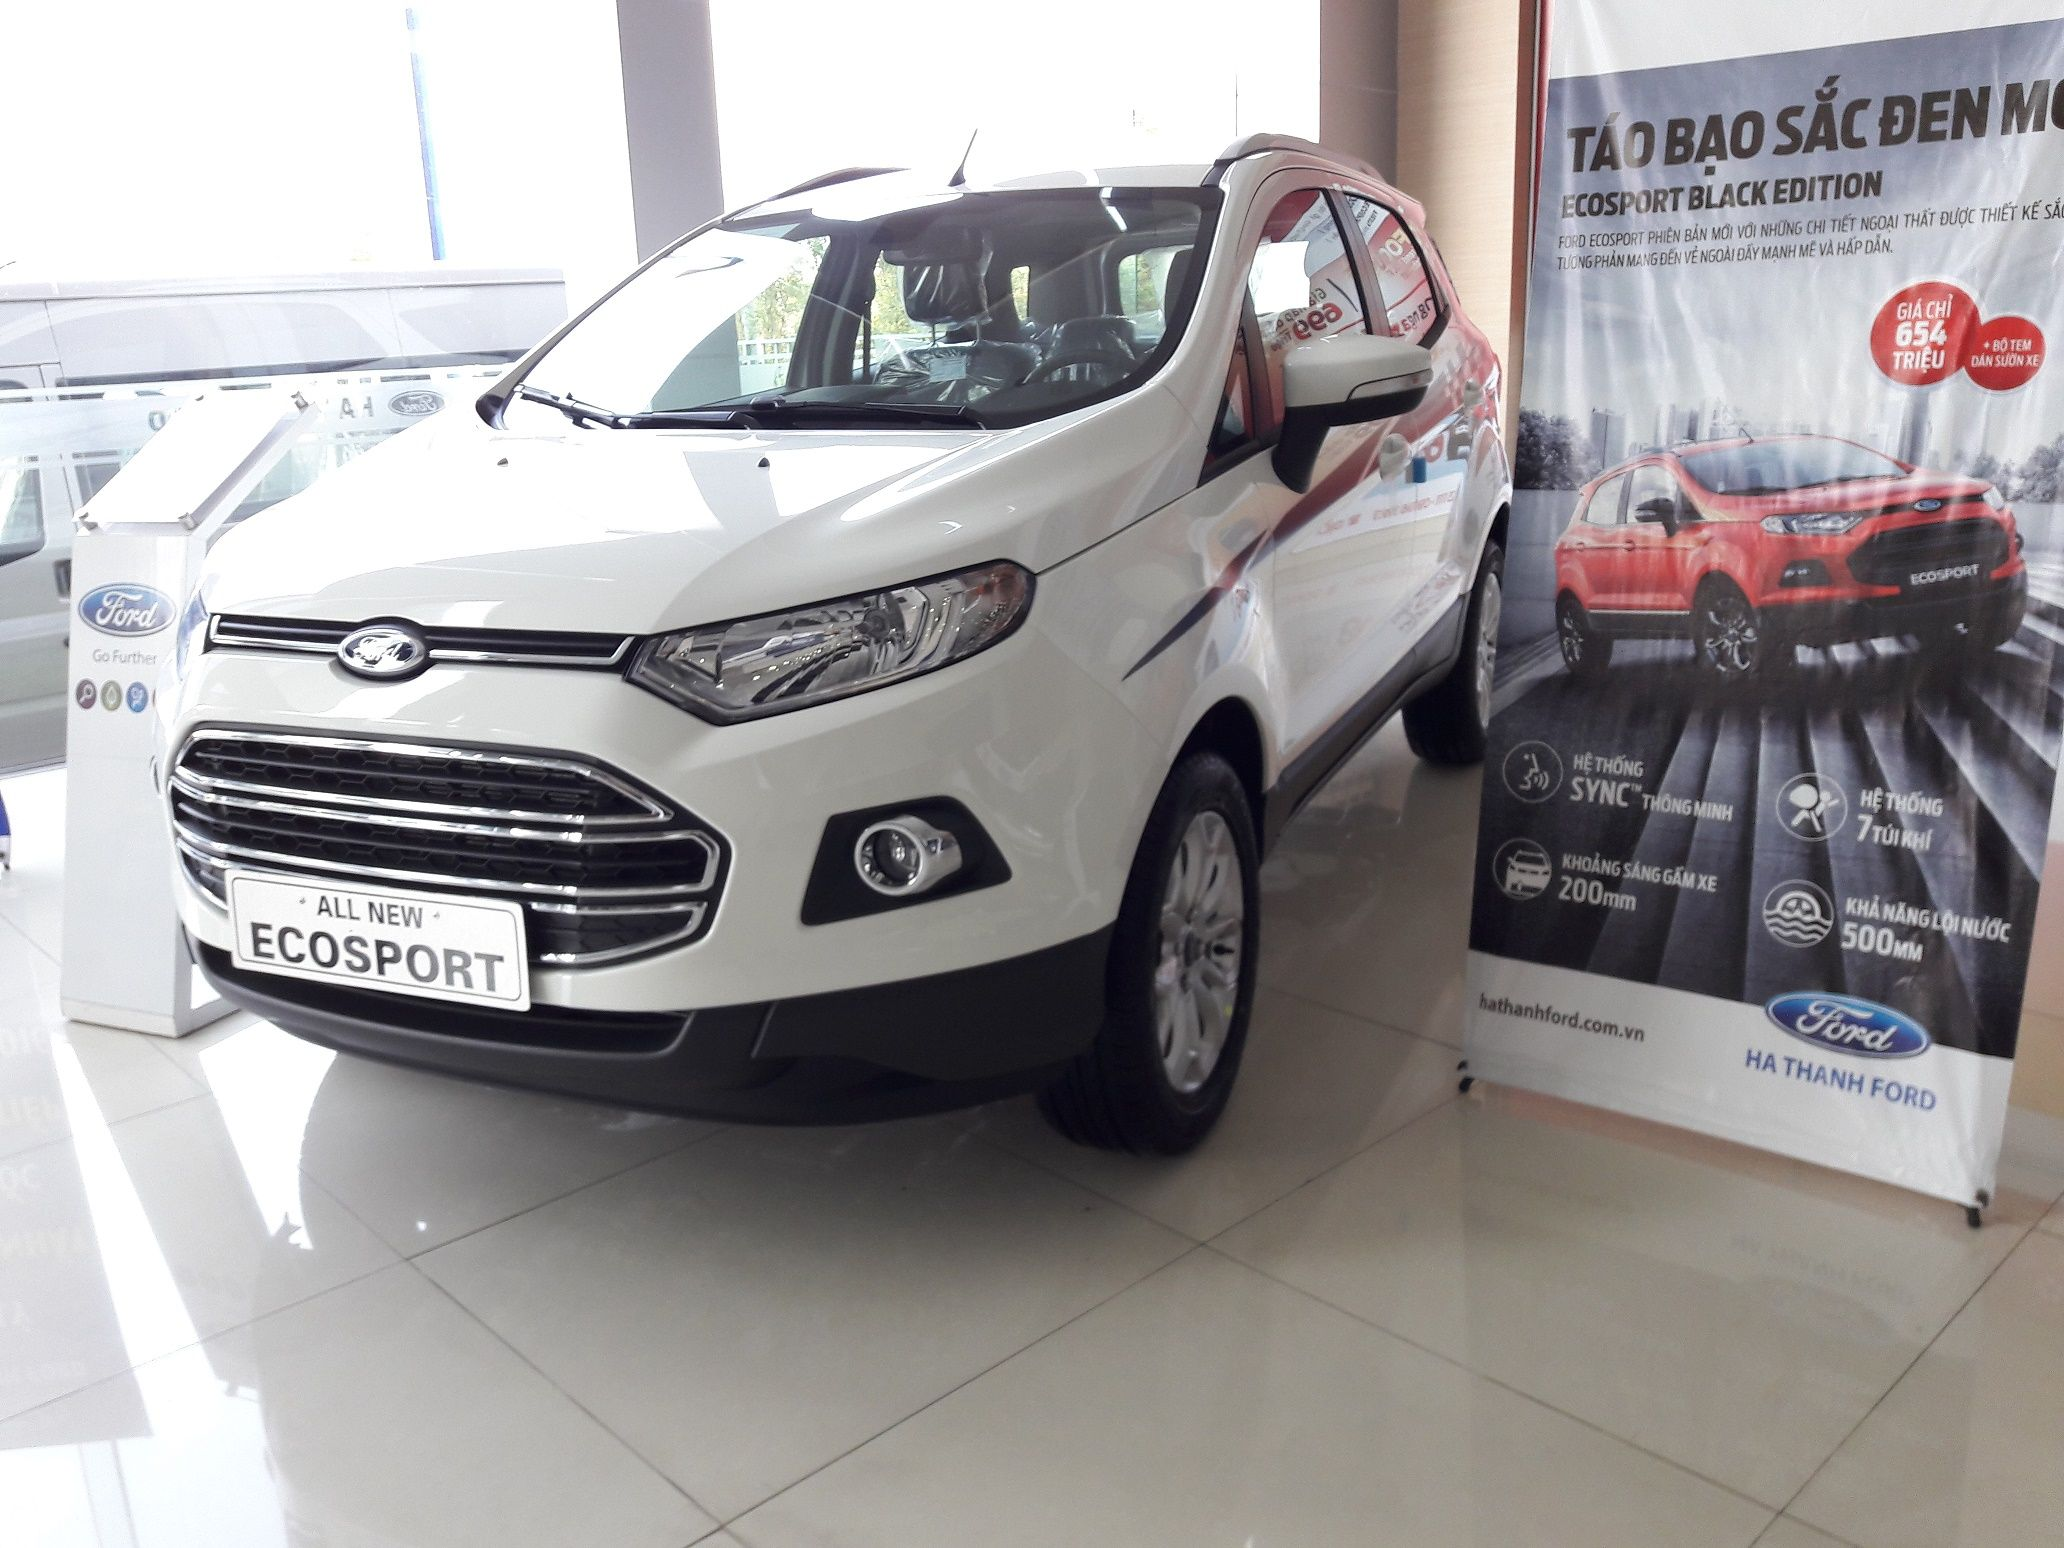 Ford tourneo courier pictures to pin on pinterest - Xe Ford Ecosport Mau Trang